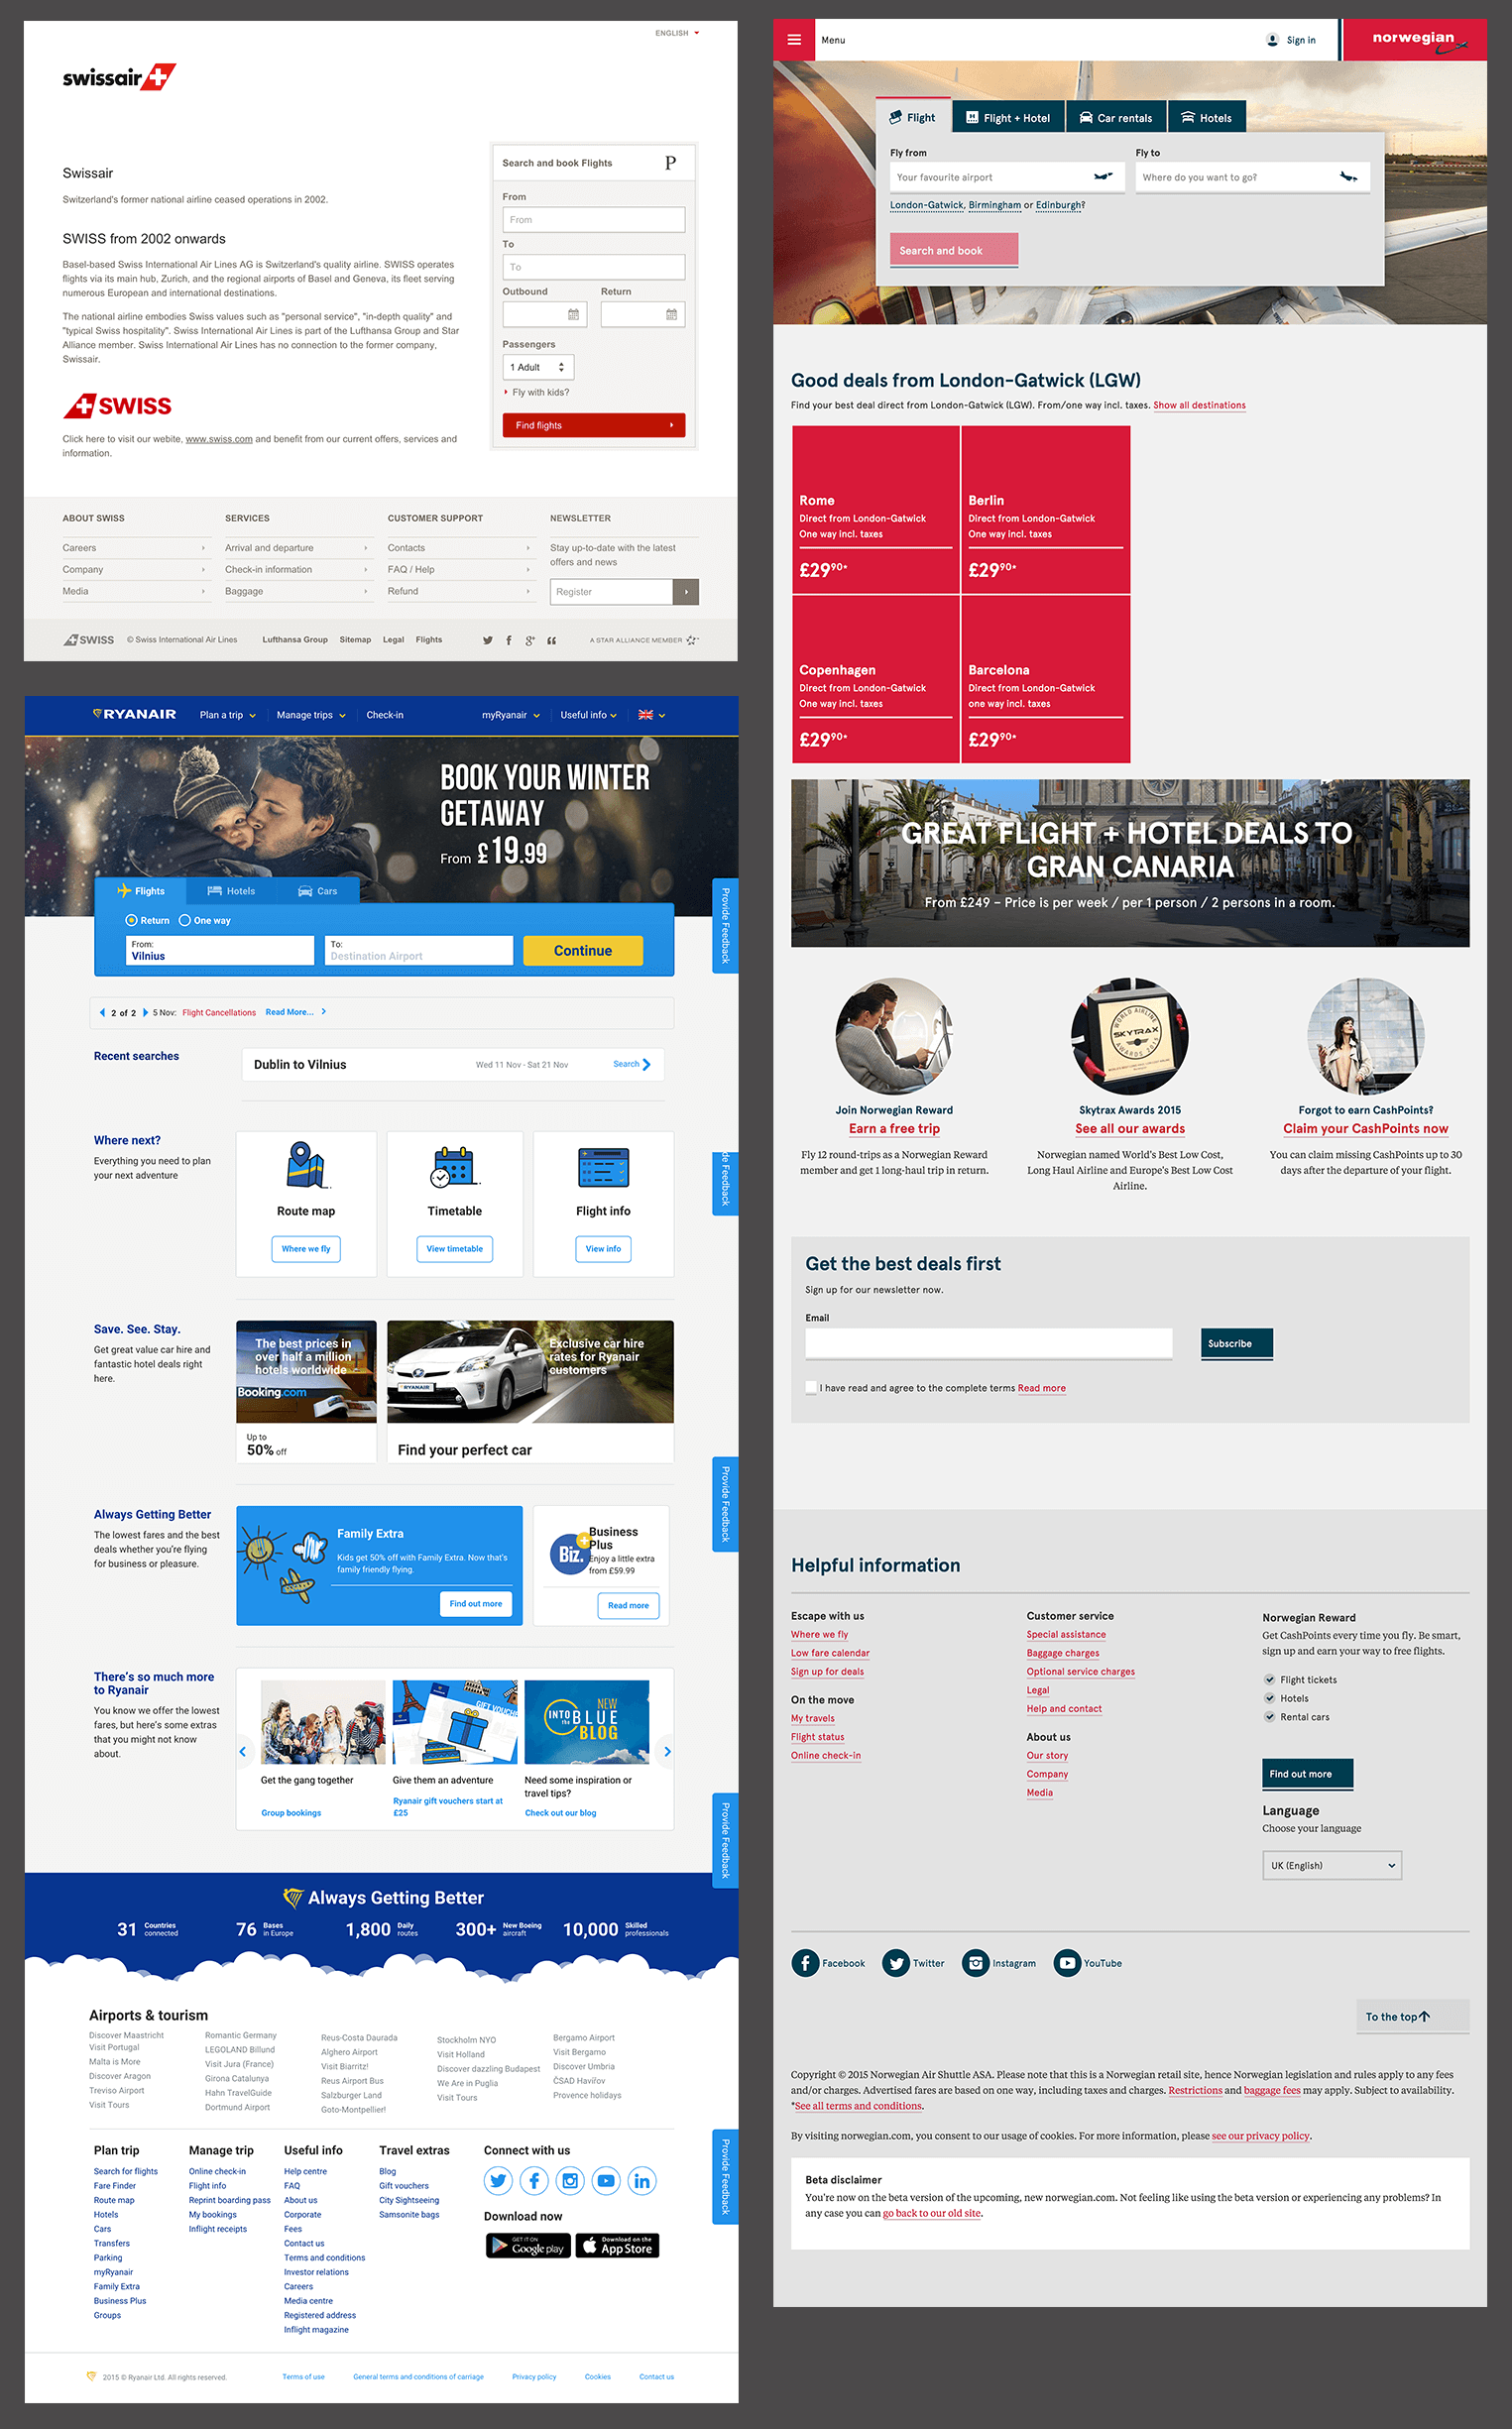 The State Of Airline Websites 2015 Lessons Learned Smashing Magazine Mainly Serve As A Getaway But Would Appreciate More Experienced Swiss Norwegian Airlines And Ryanair Seem To Have Simplest Designs